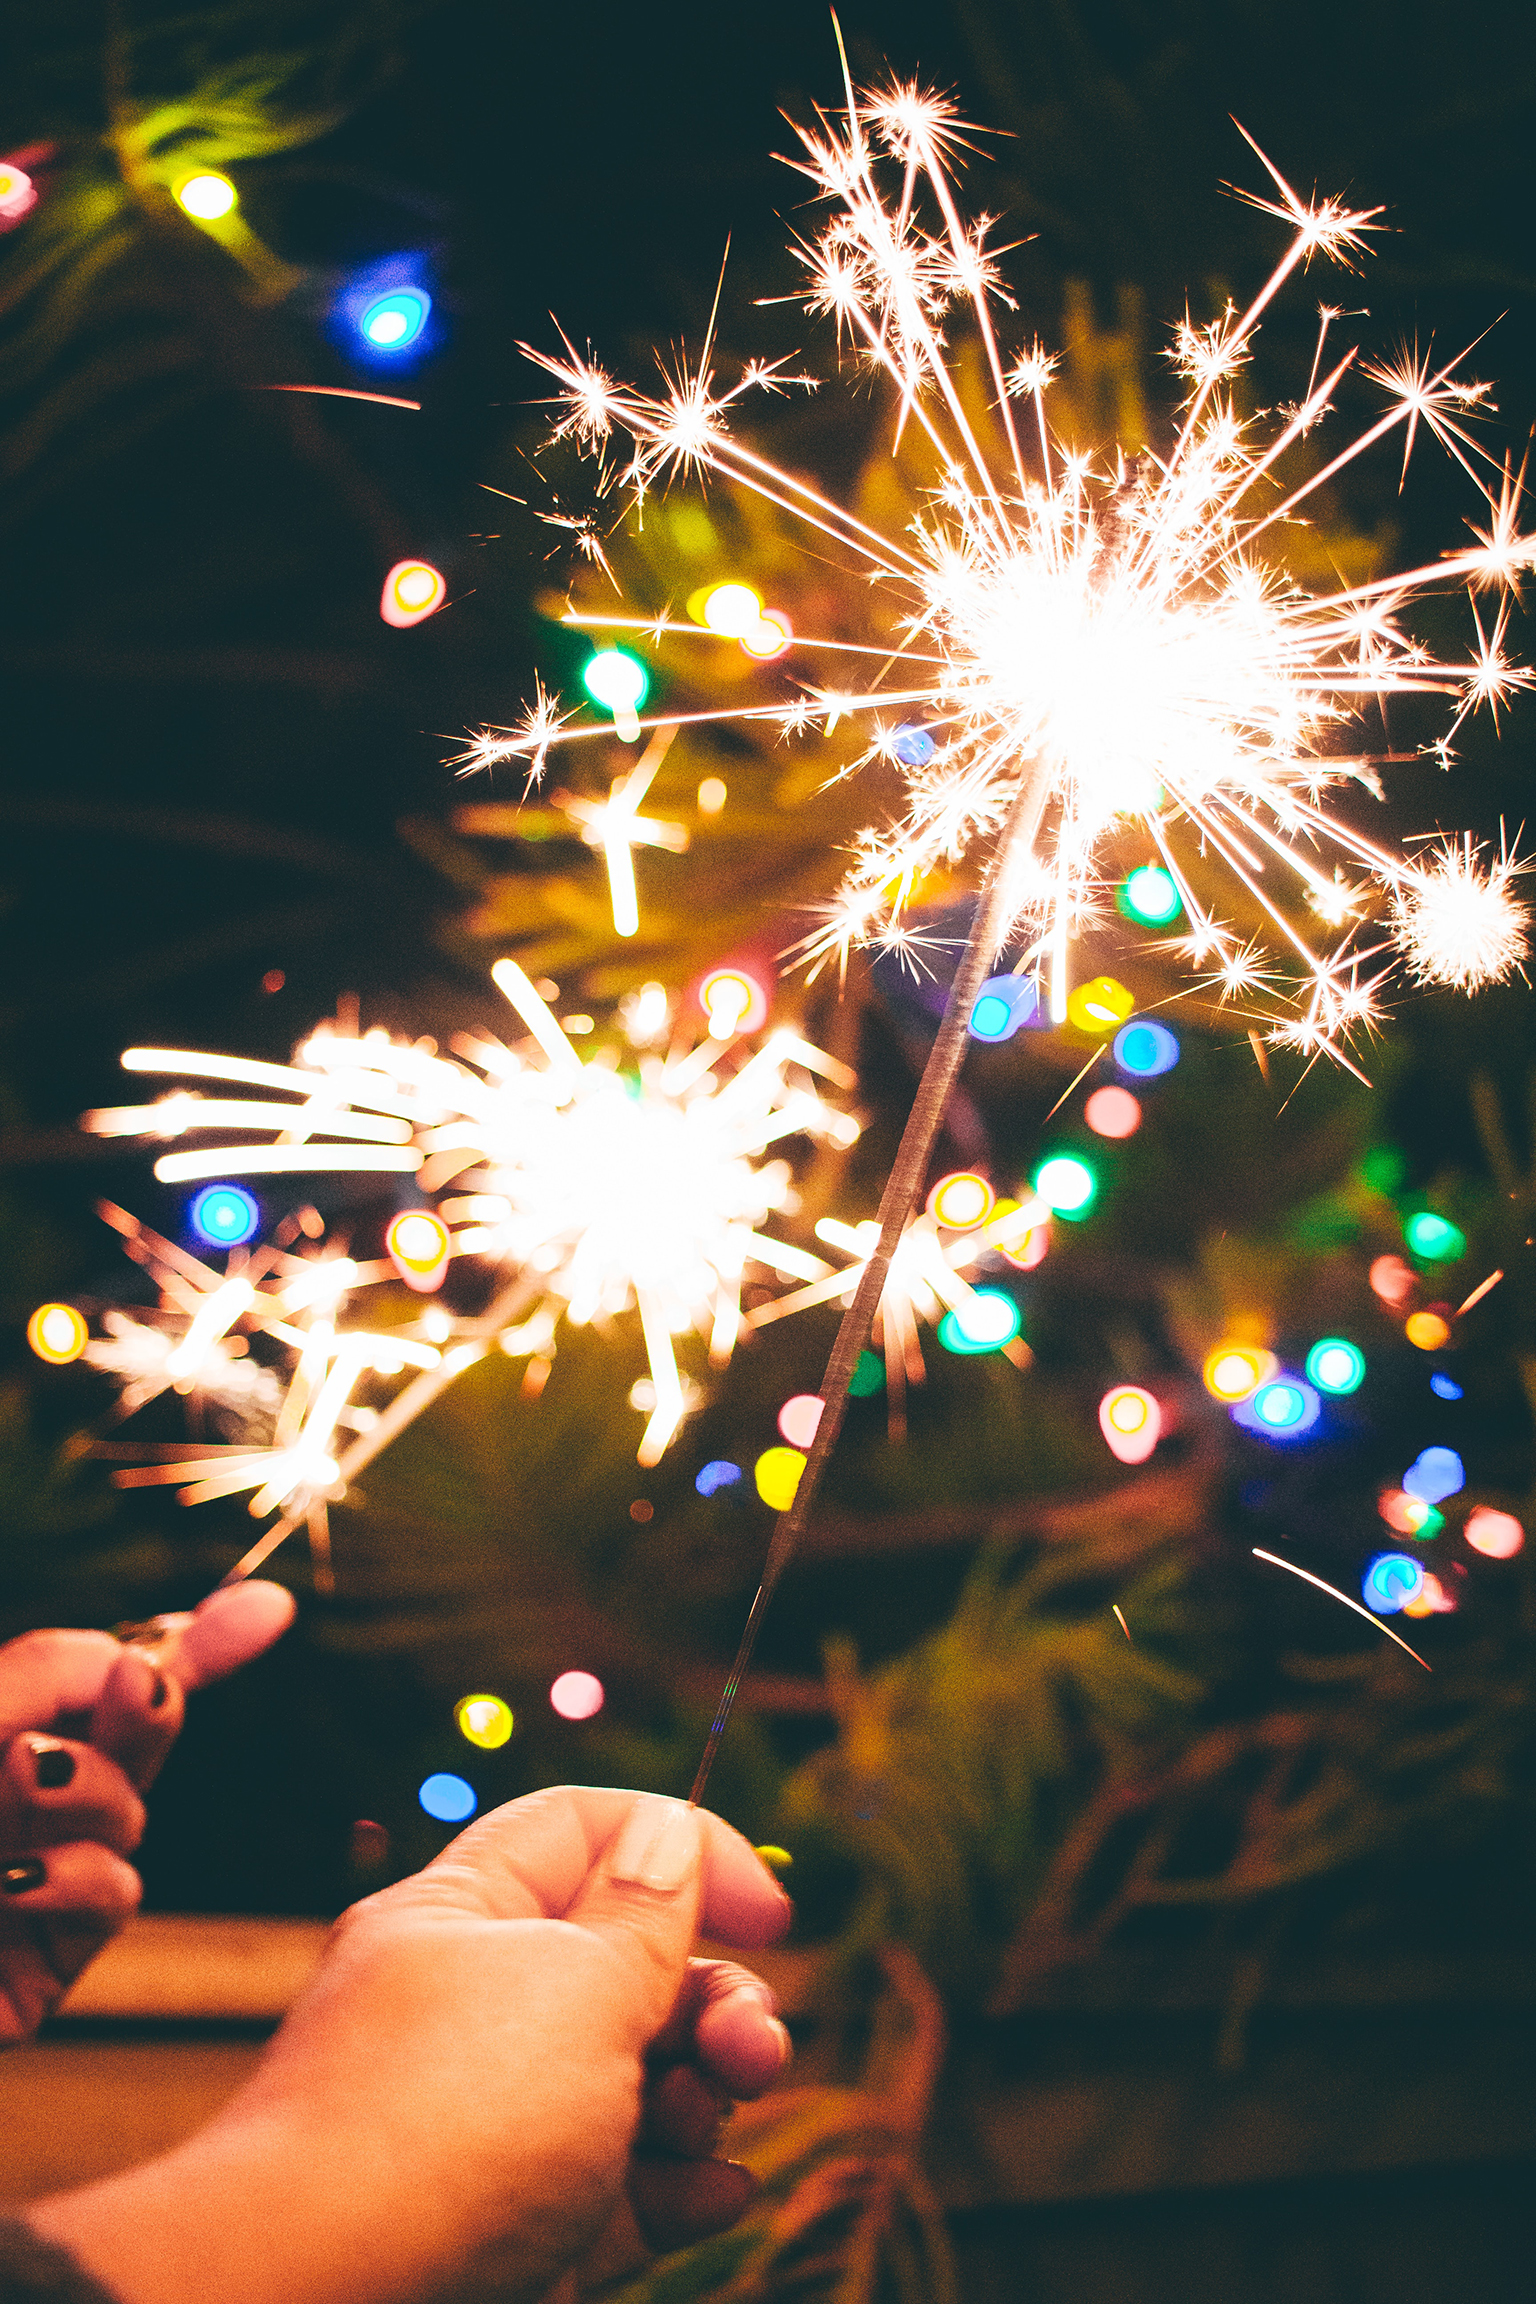 Close-up on two different people's hands holding sparklers